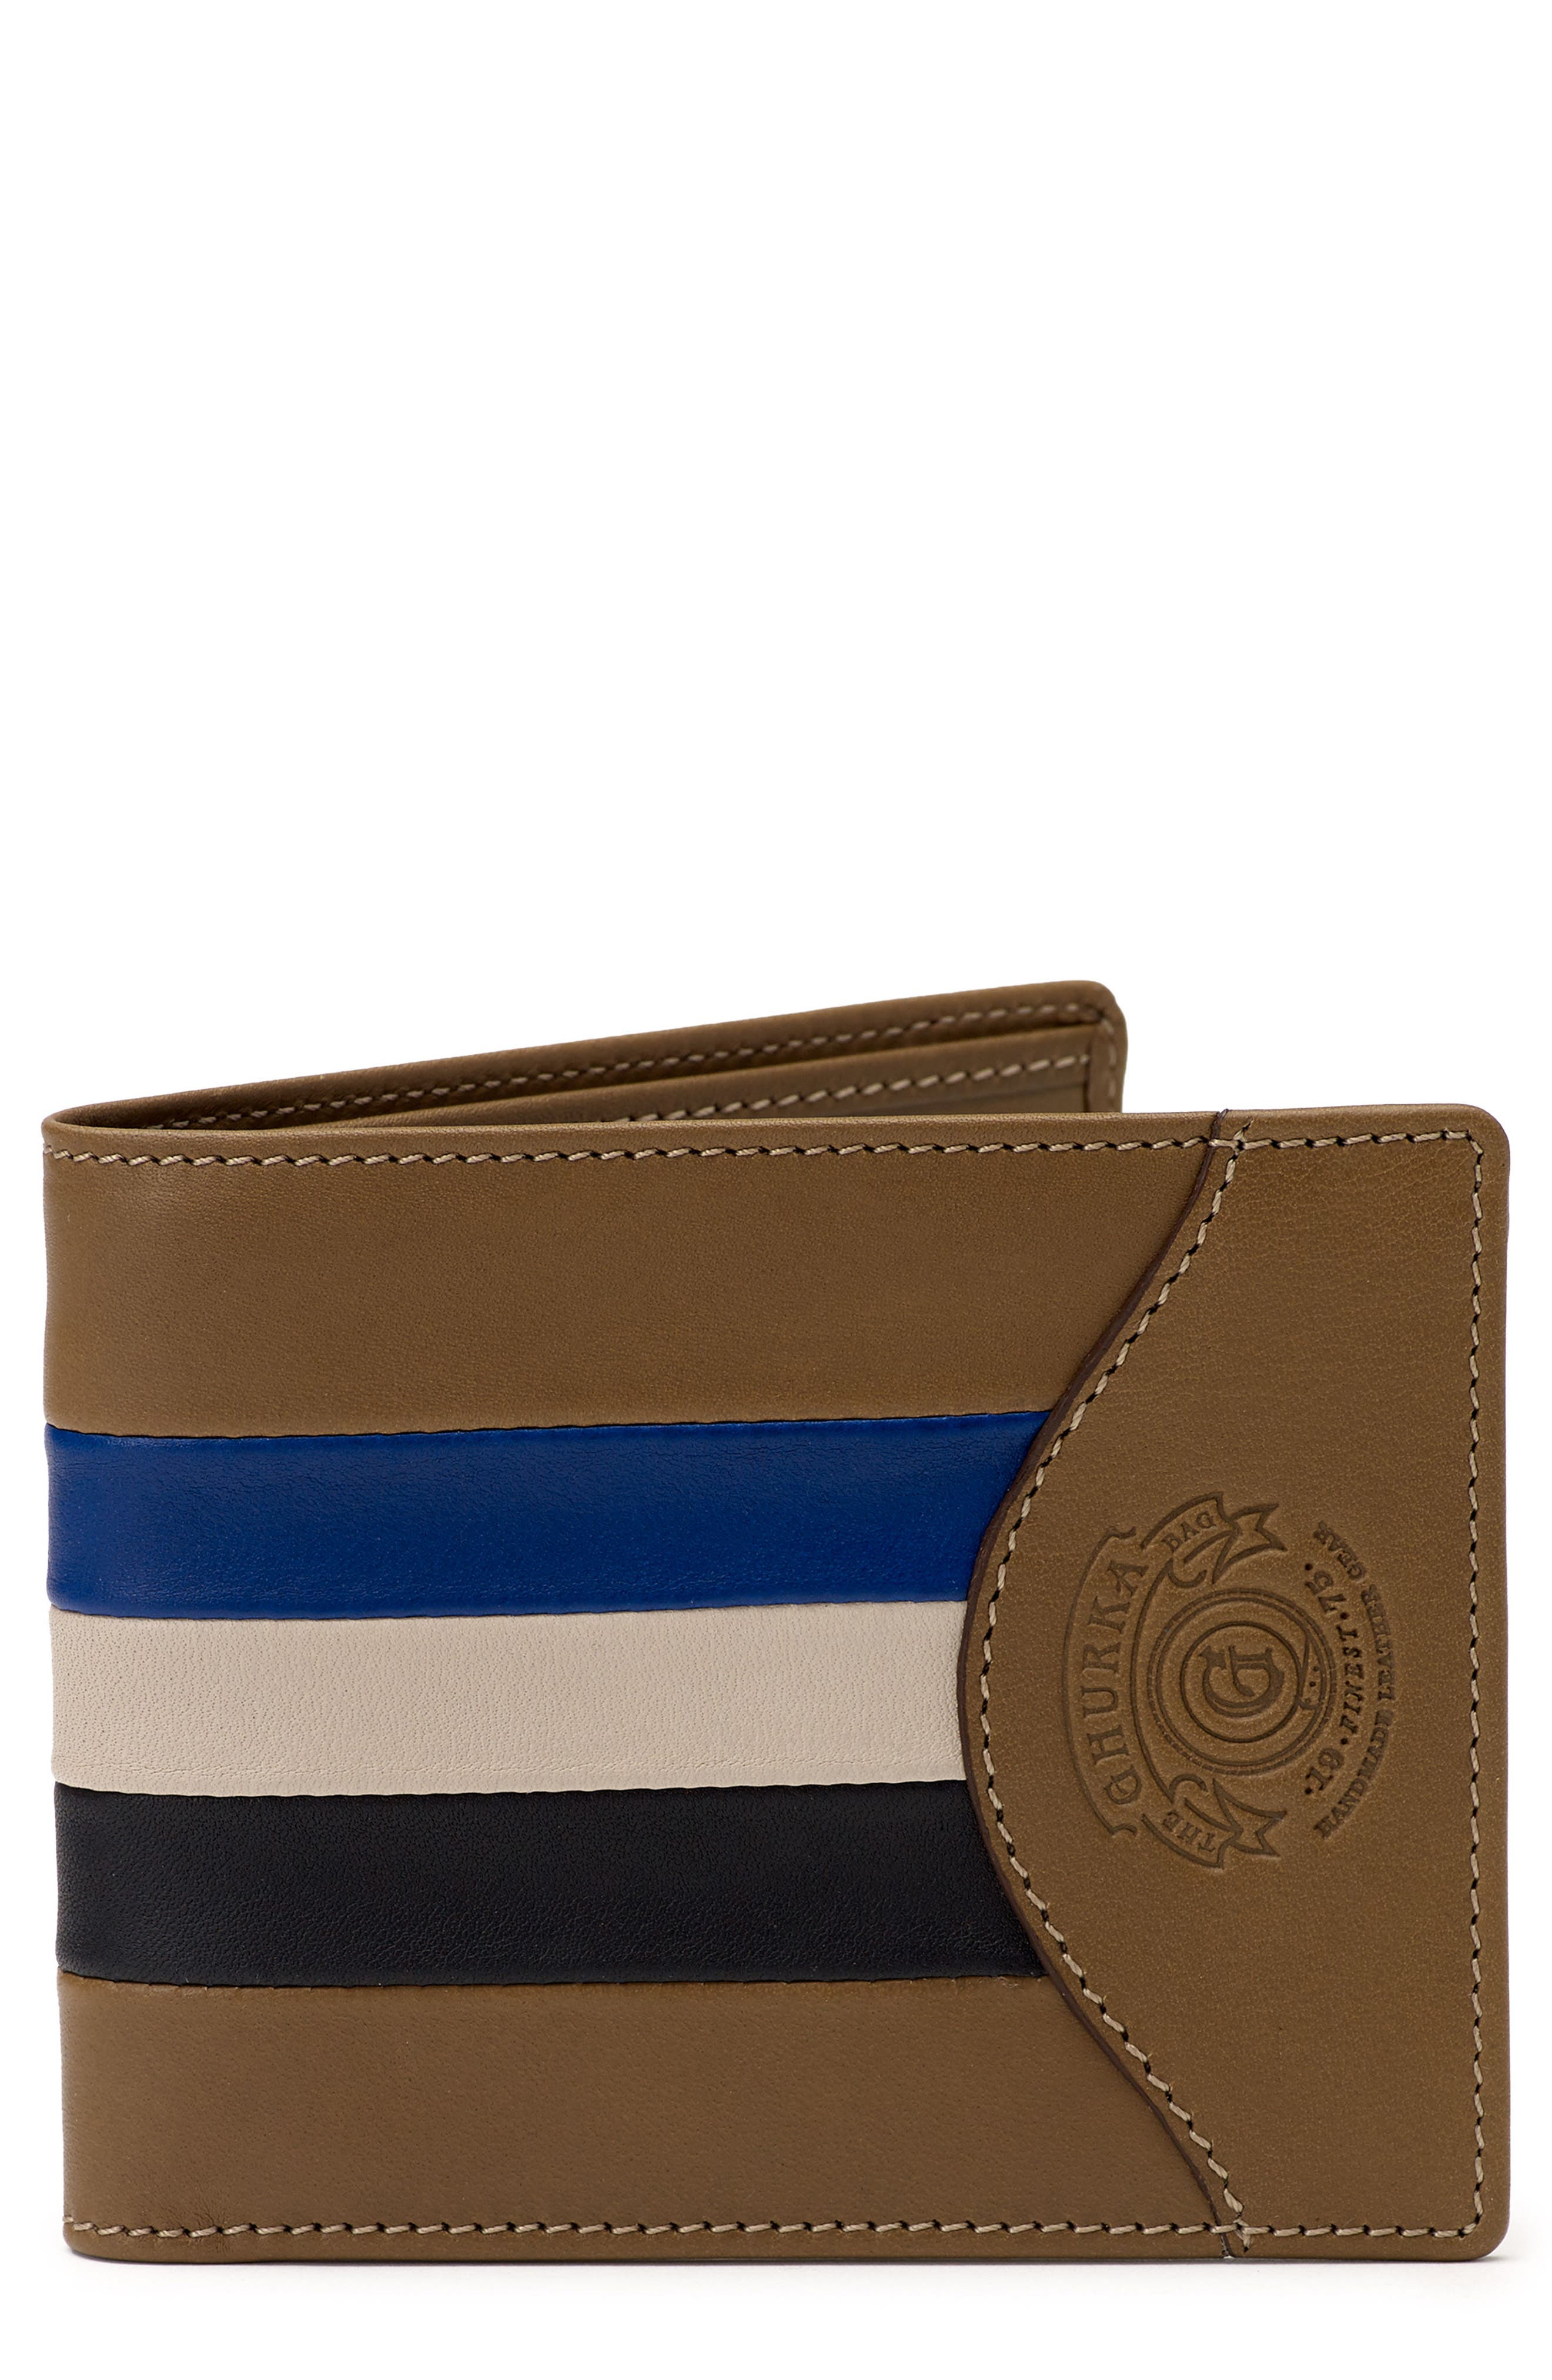 Ghurka Leather Wallet